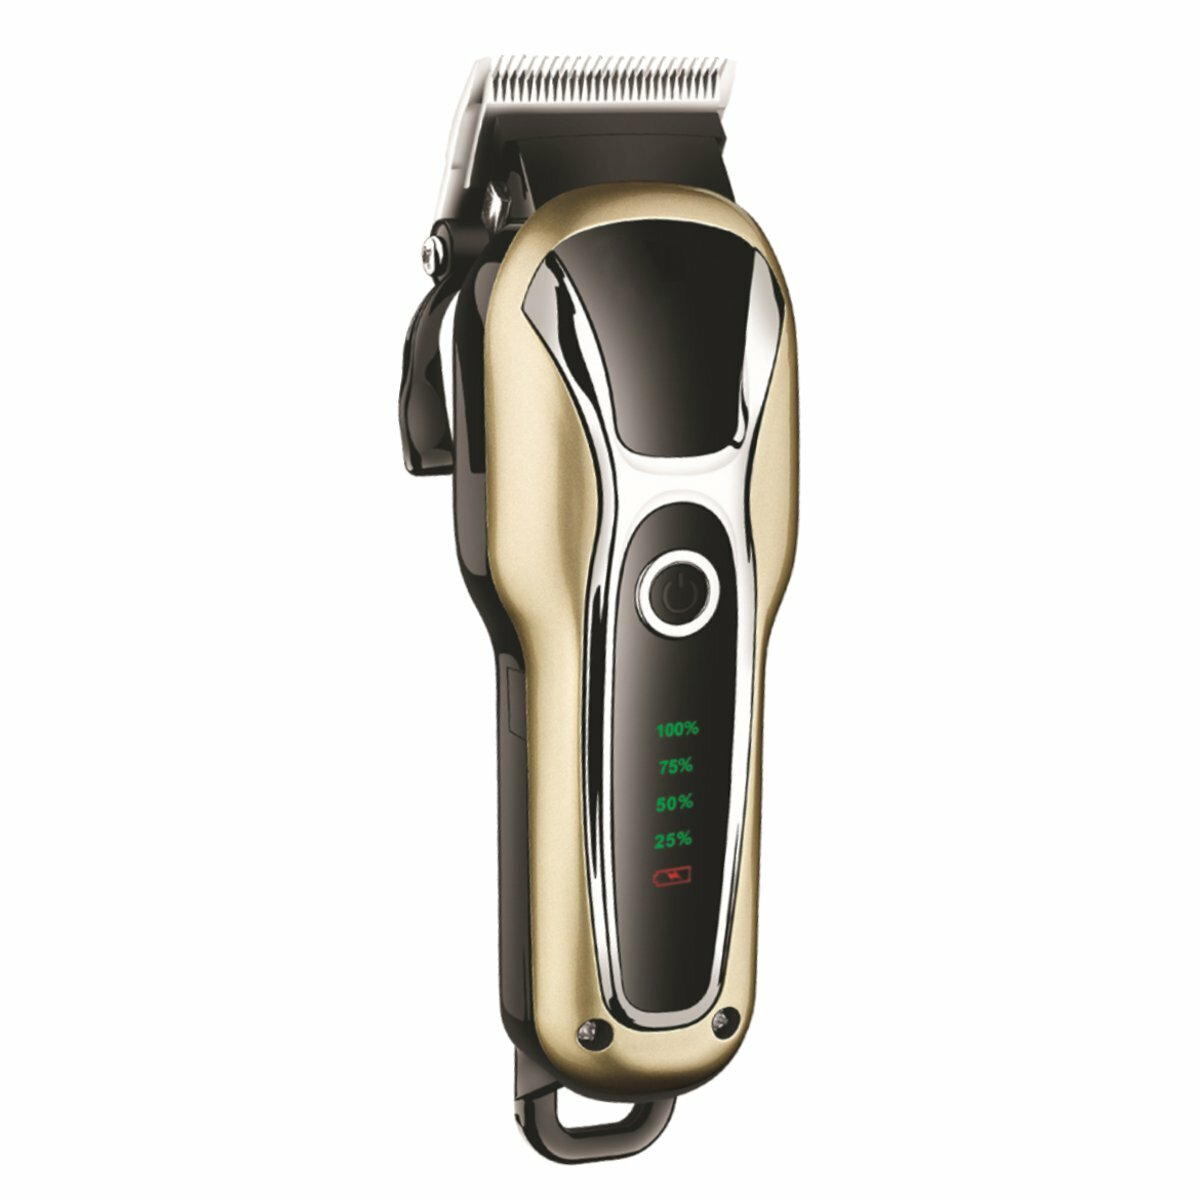 USB T9 Carving Push White Small Fader Oil Head Electric Clipper Rechargeable Electric Hair Clipper - 3